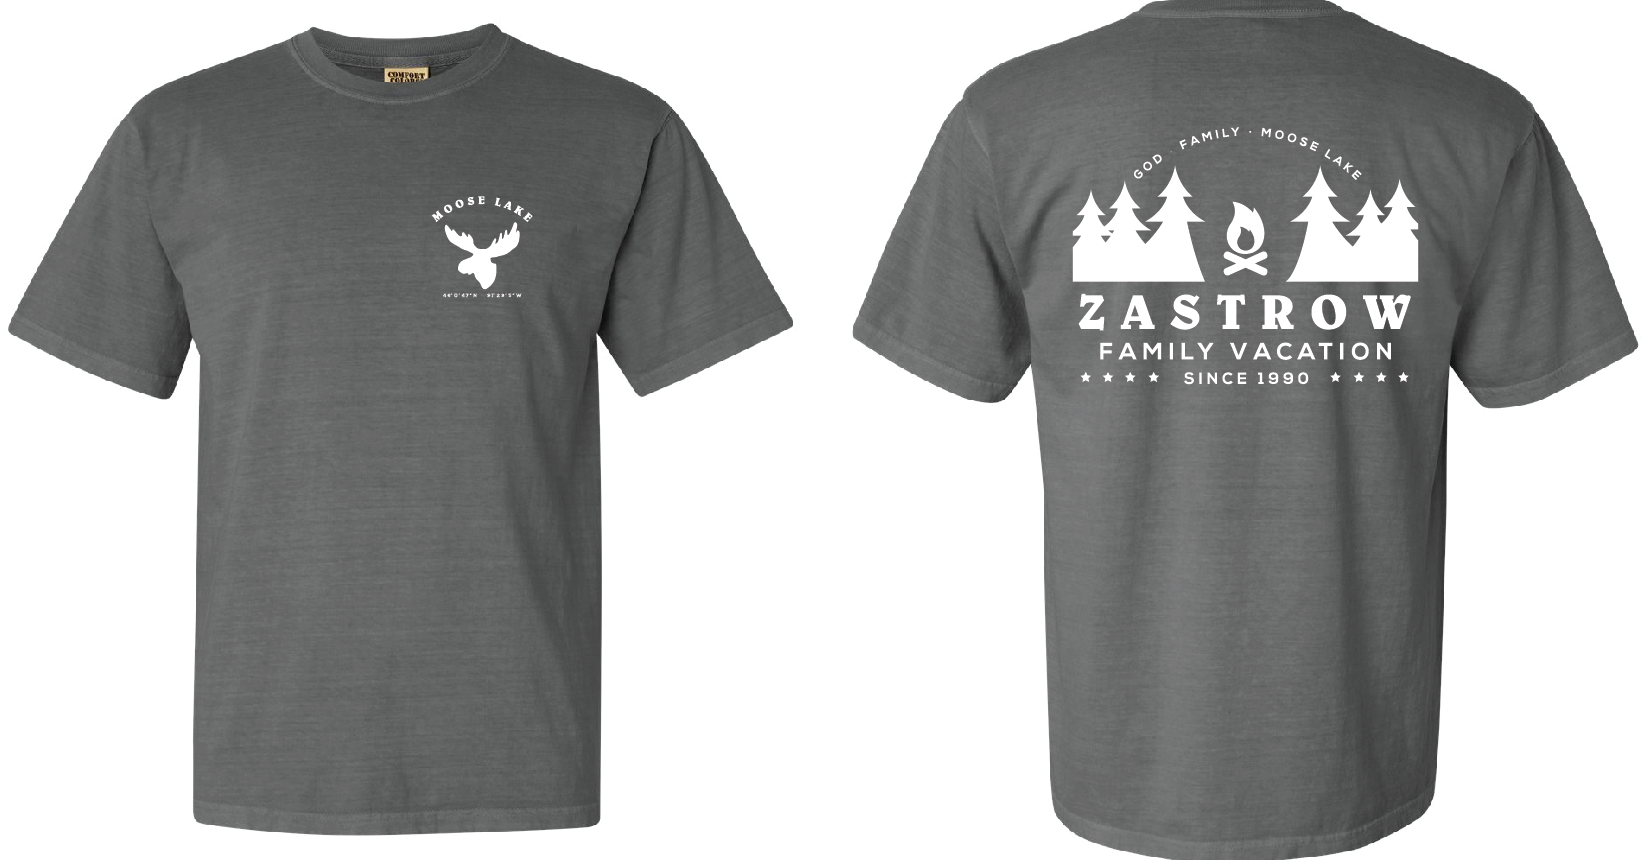 9153385d Family reunion | lake shirt design | comfort colors | grey | moose lake |  get together | esokol@marktsolutions.com